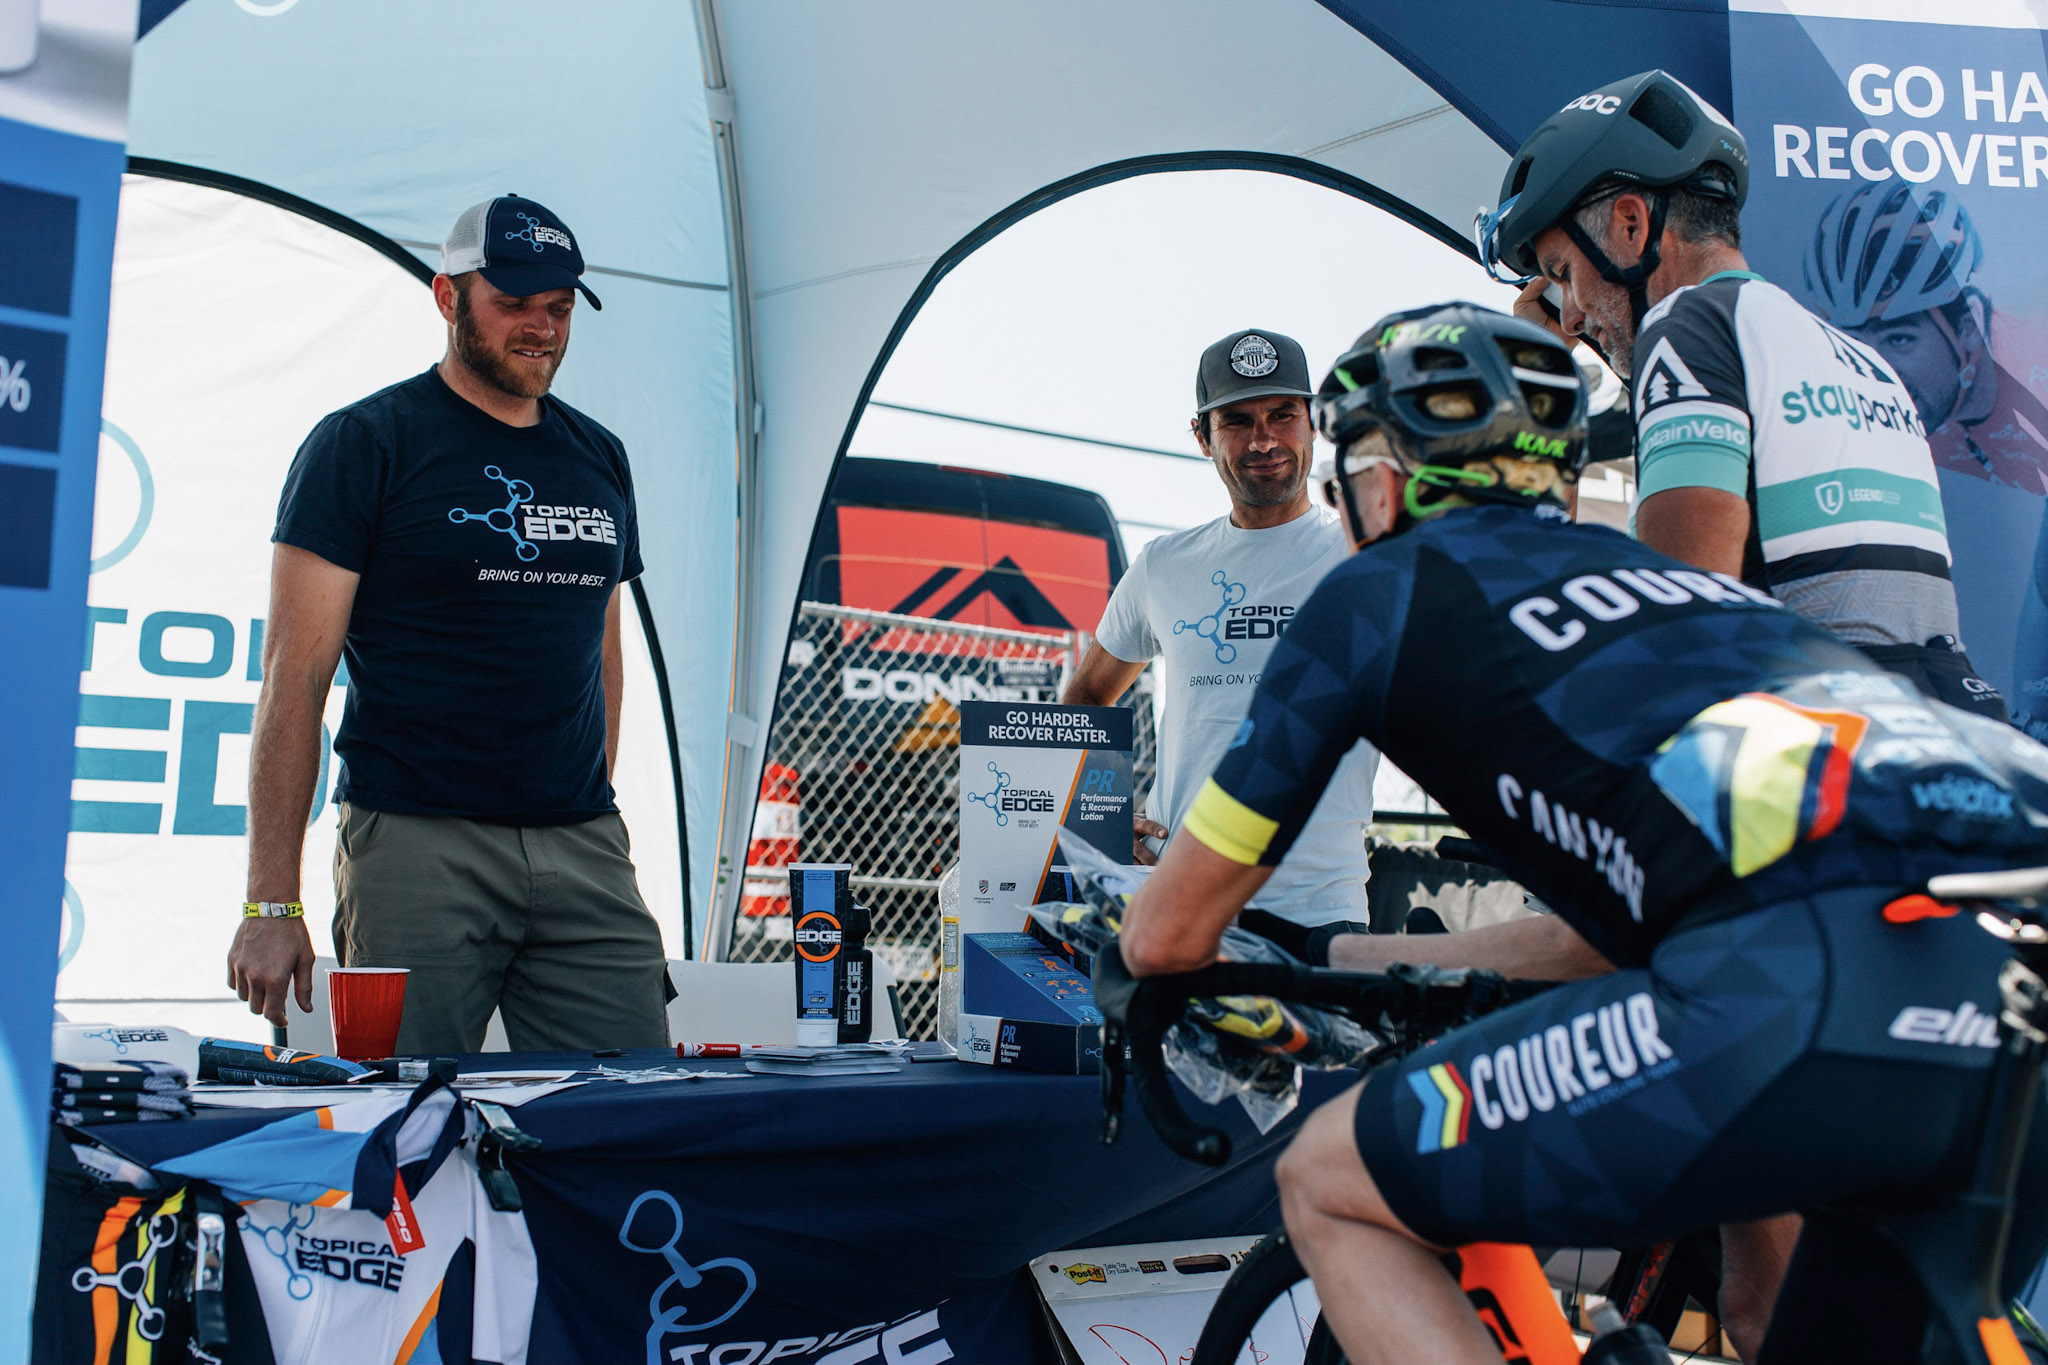 Neil, at the Tropical Edge tent advising a local Coureur rider, is thinking he really should have picked up one of those Gravelstoke hats over at the GUP tent.